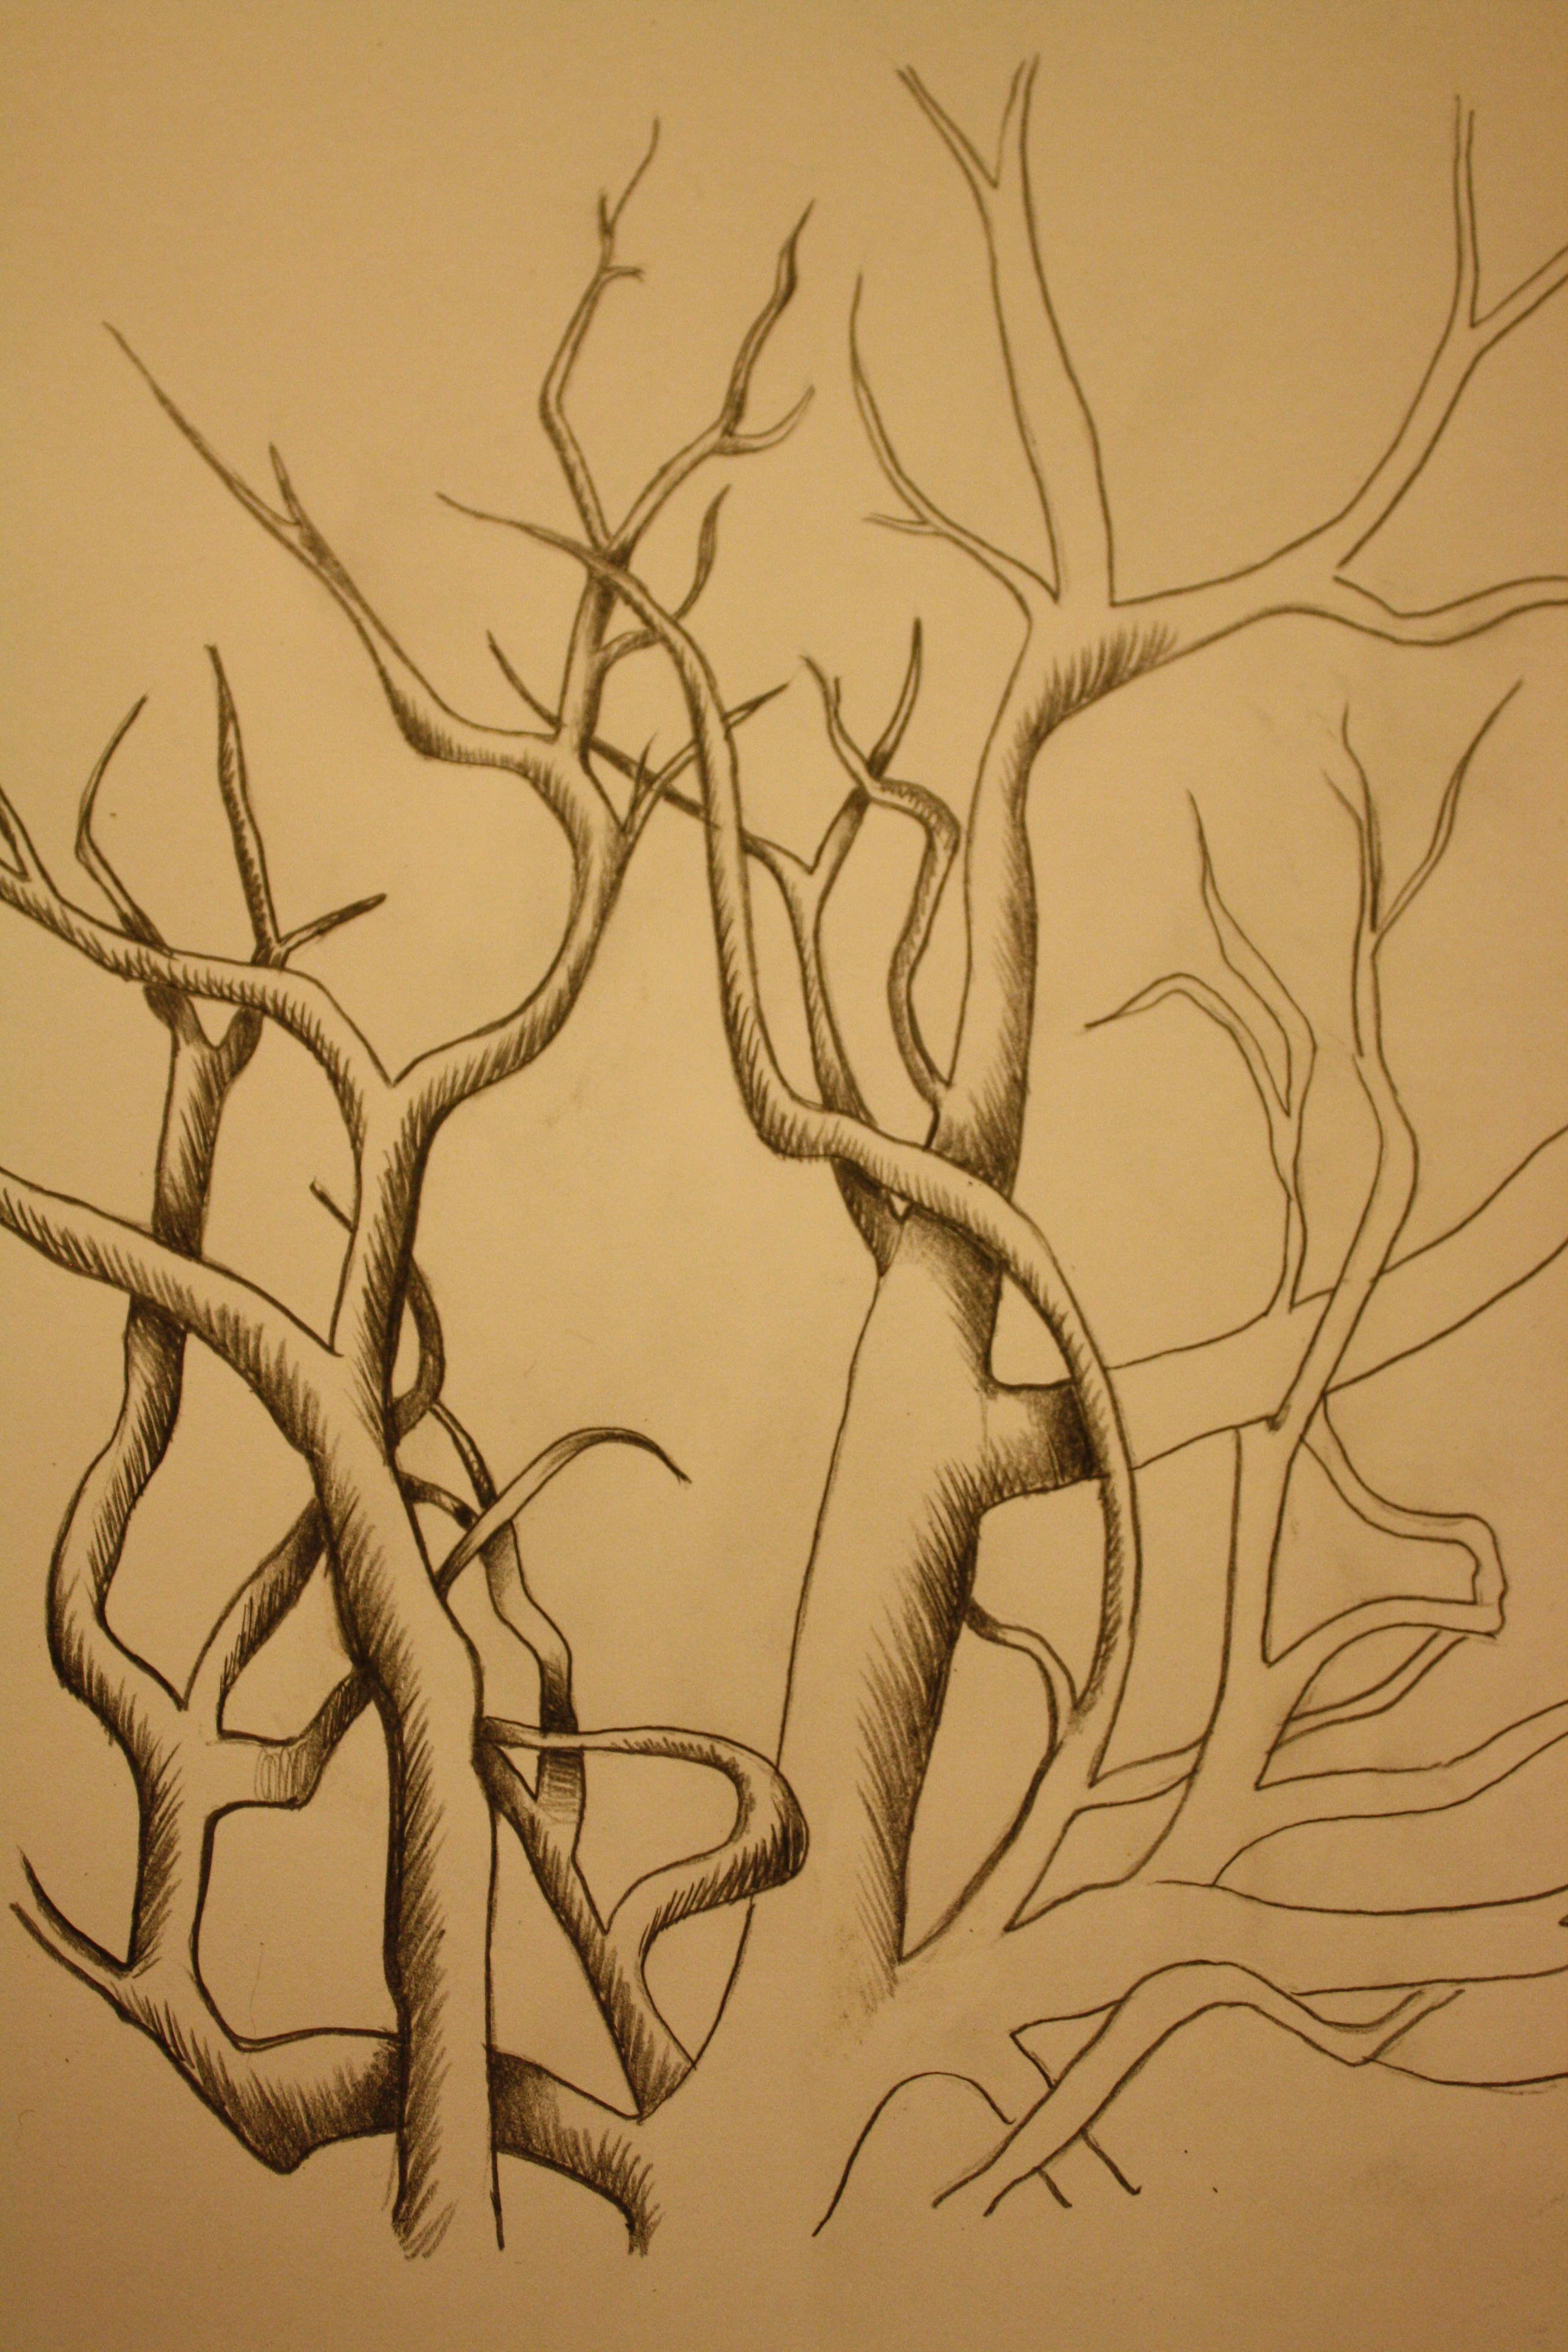 free Day of days everydaydrawings. Veins drawing tree